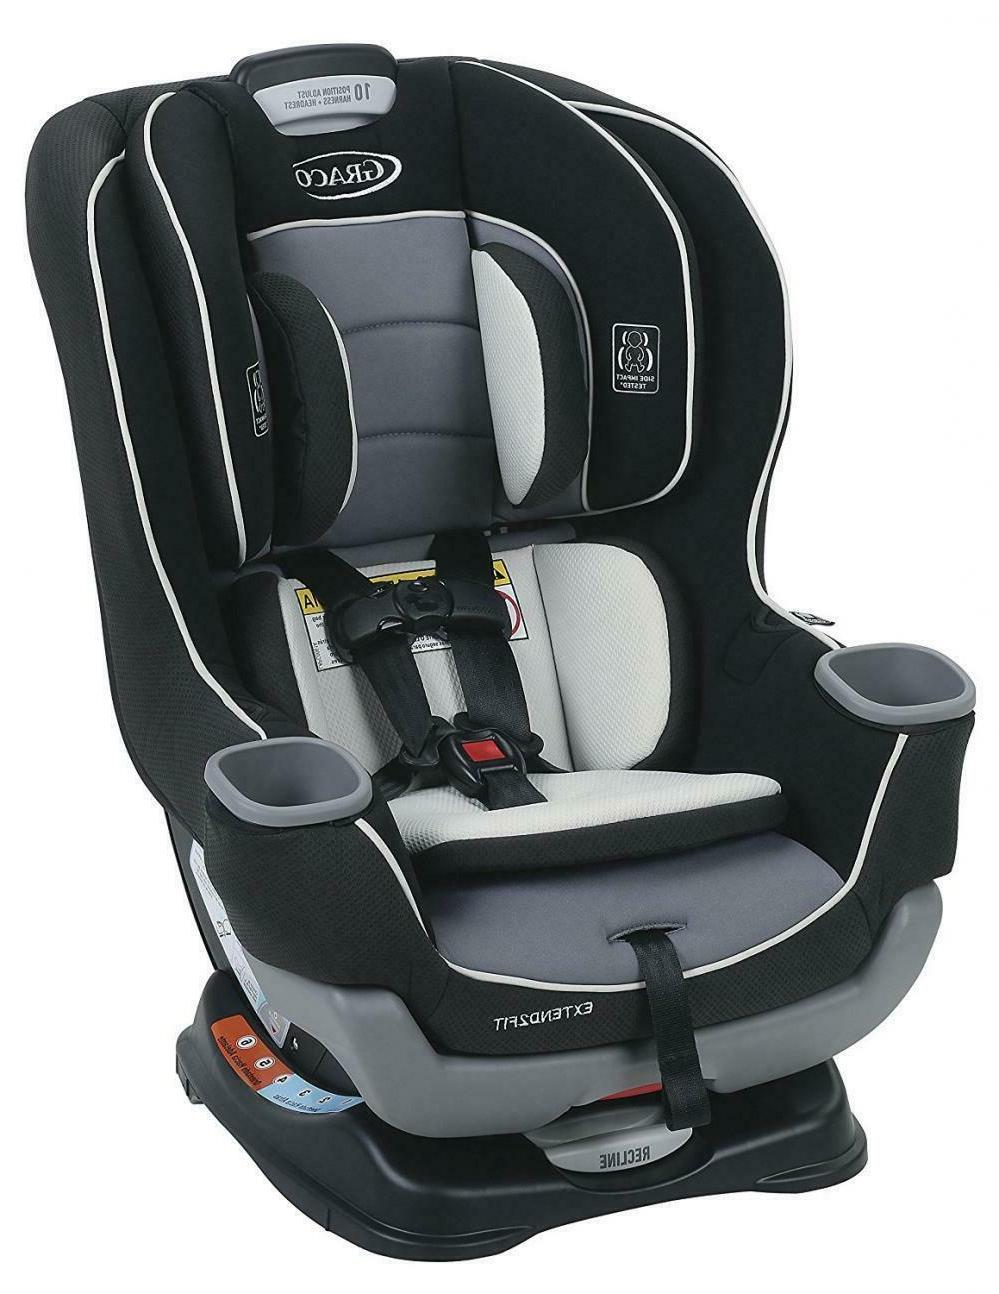 8/19 *FAST SHIPPING* Graco Extend2Fit Car Gotham